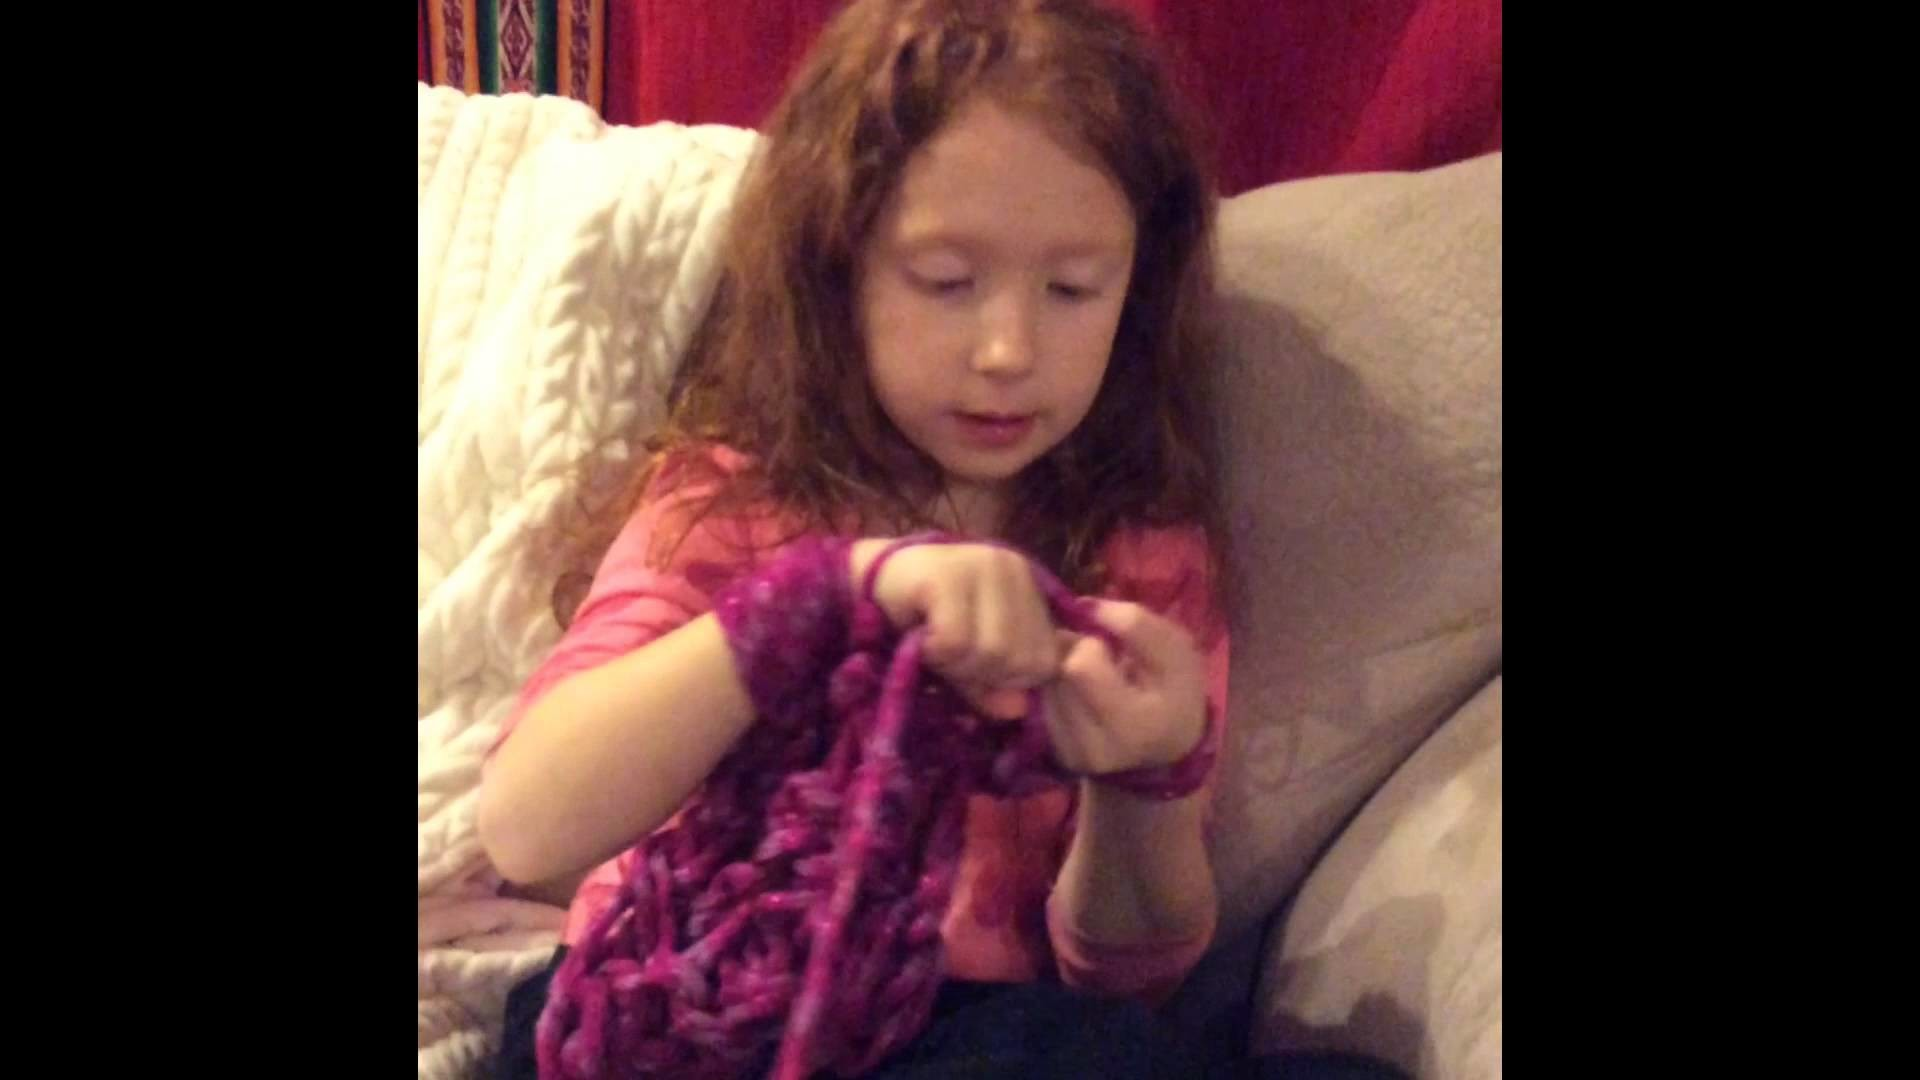 Super Cute DIY arm knitting tutorial demonstrated by an adorable 6 year old.